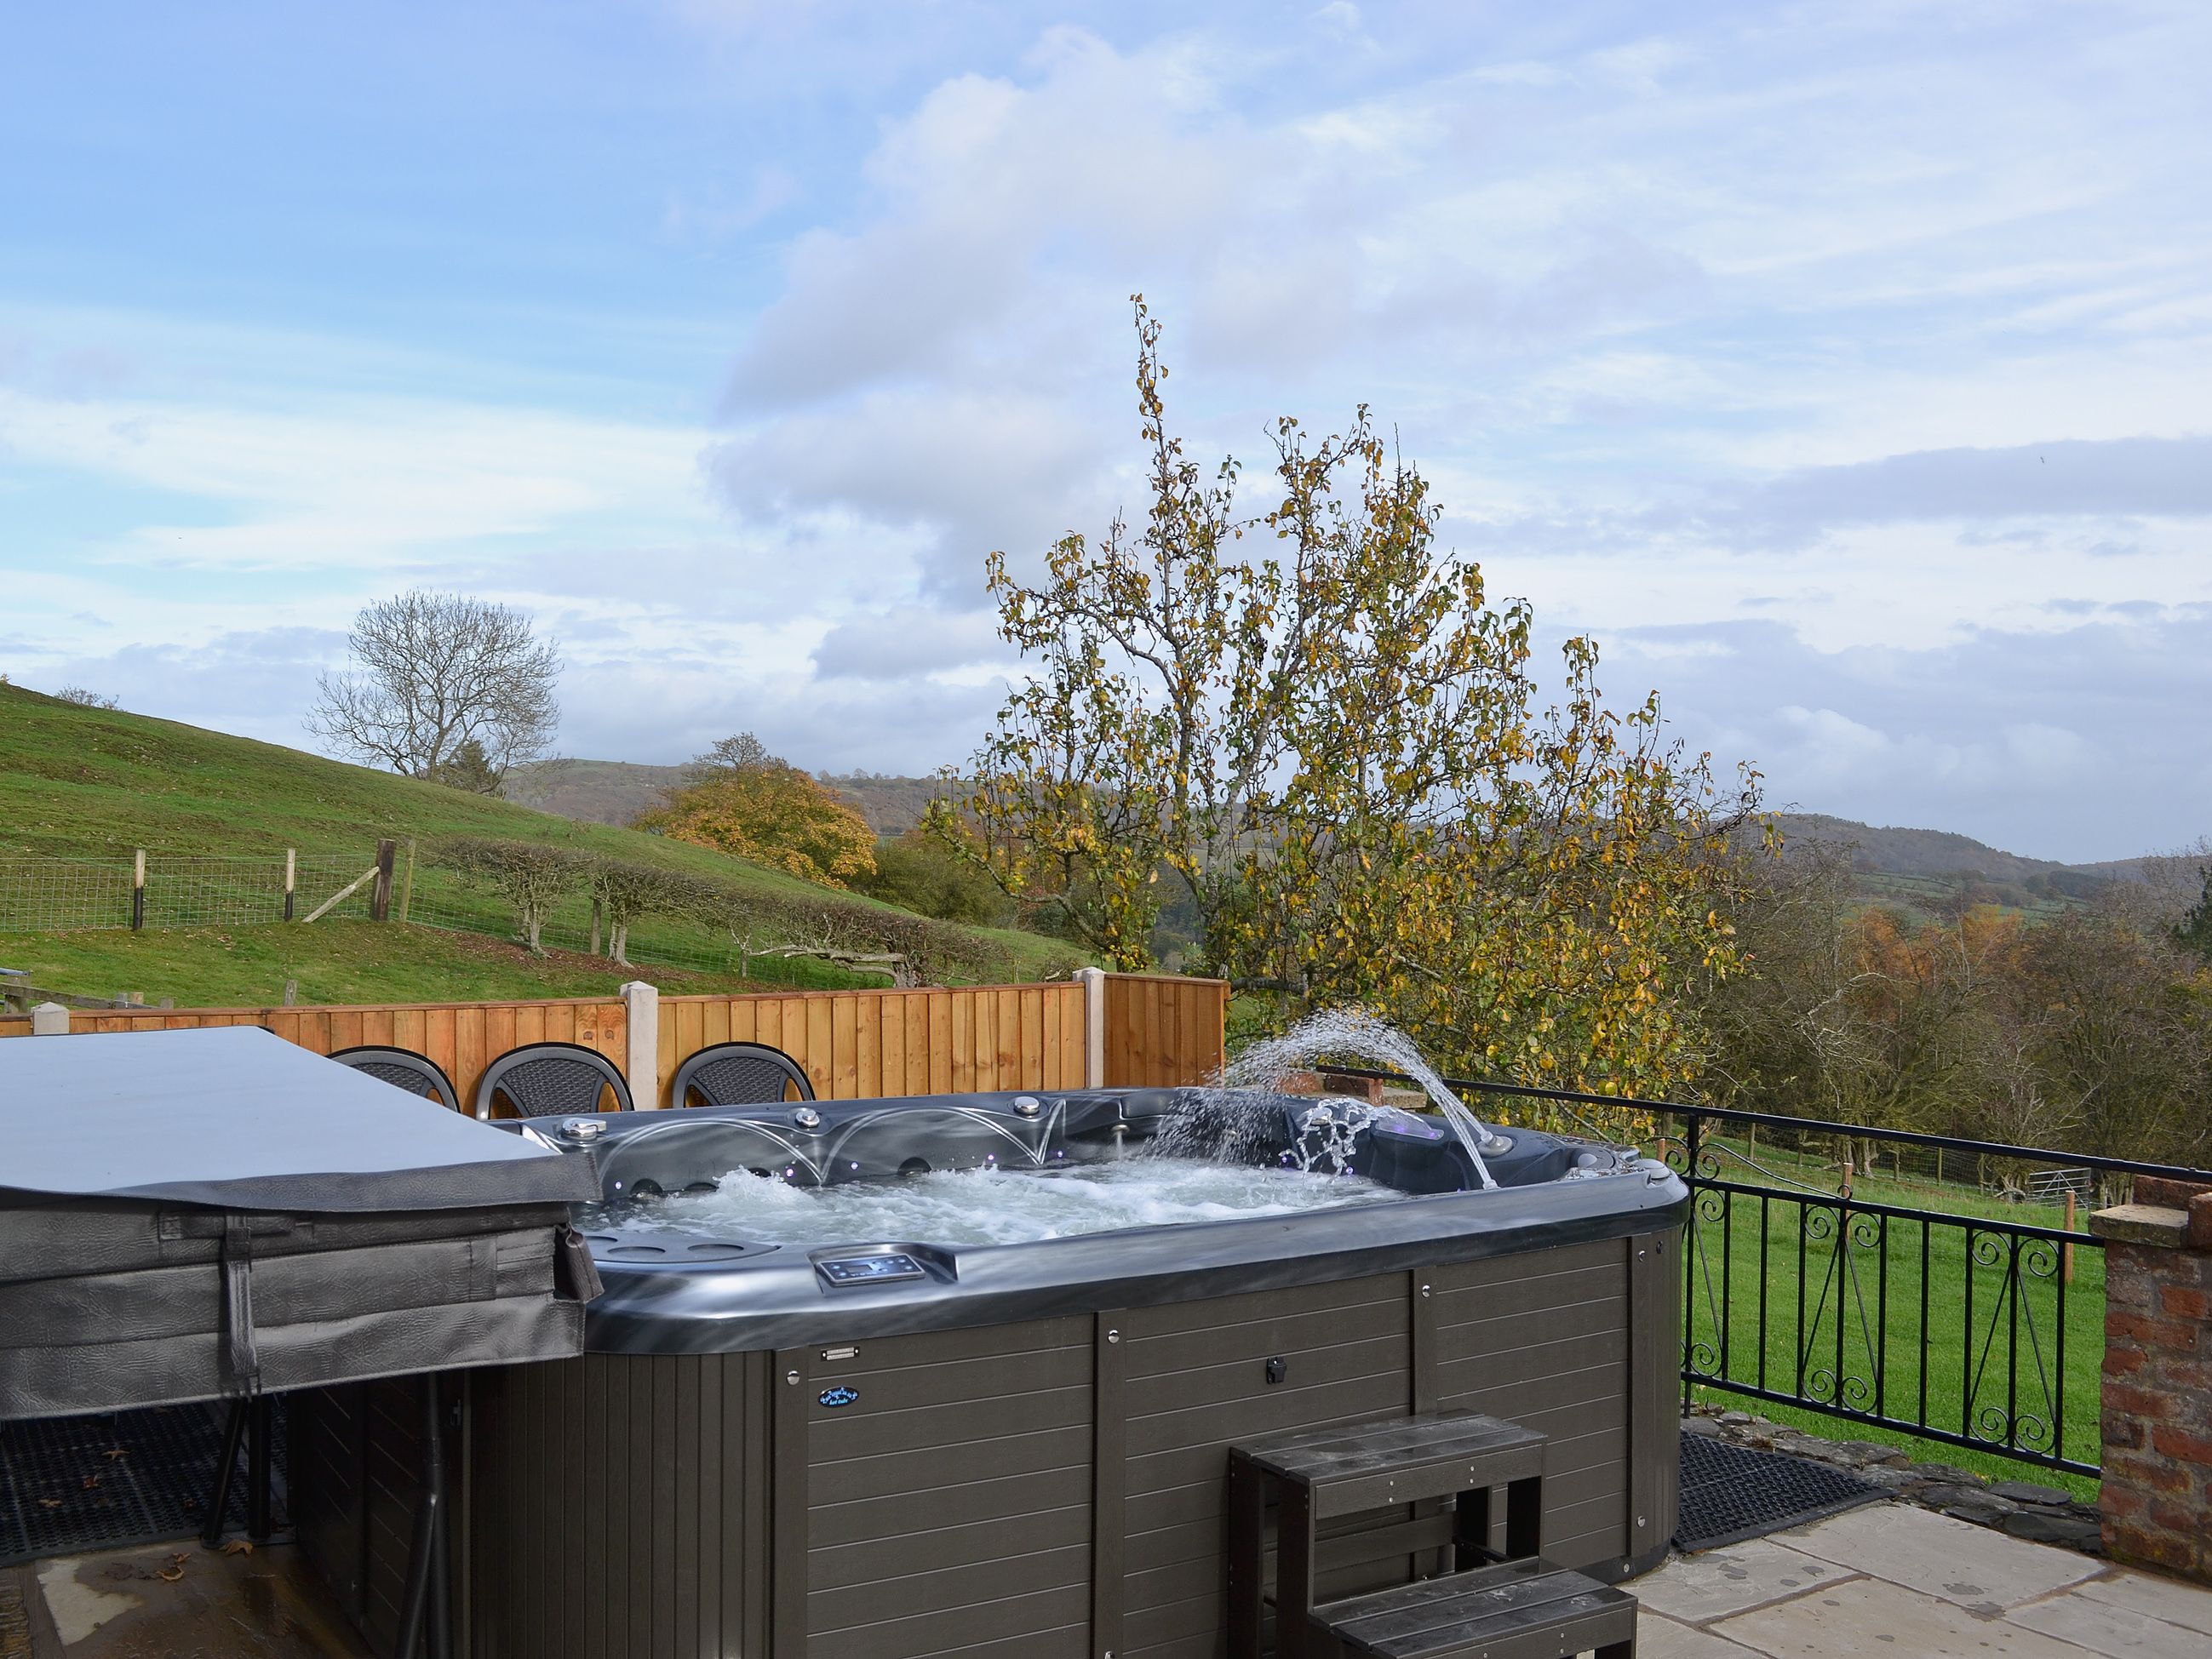 After a long day, relax in the 9-seater hot tub and enjoy the views ...